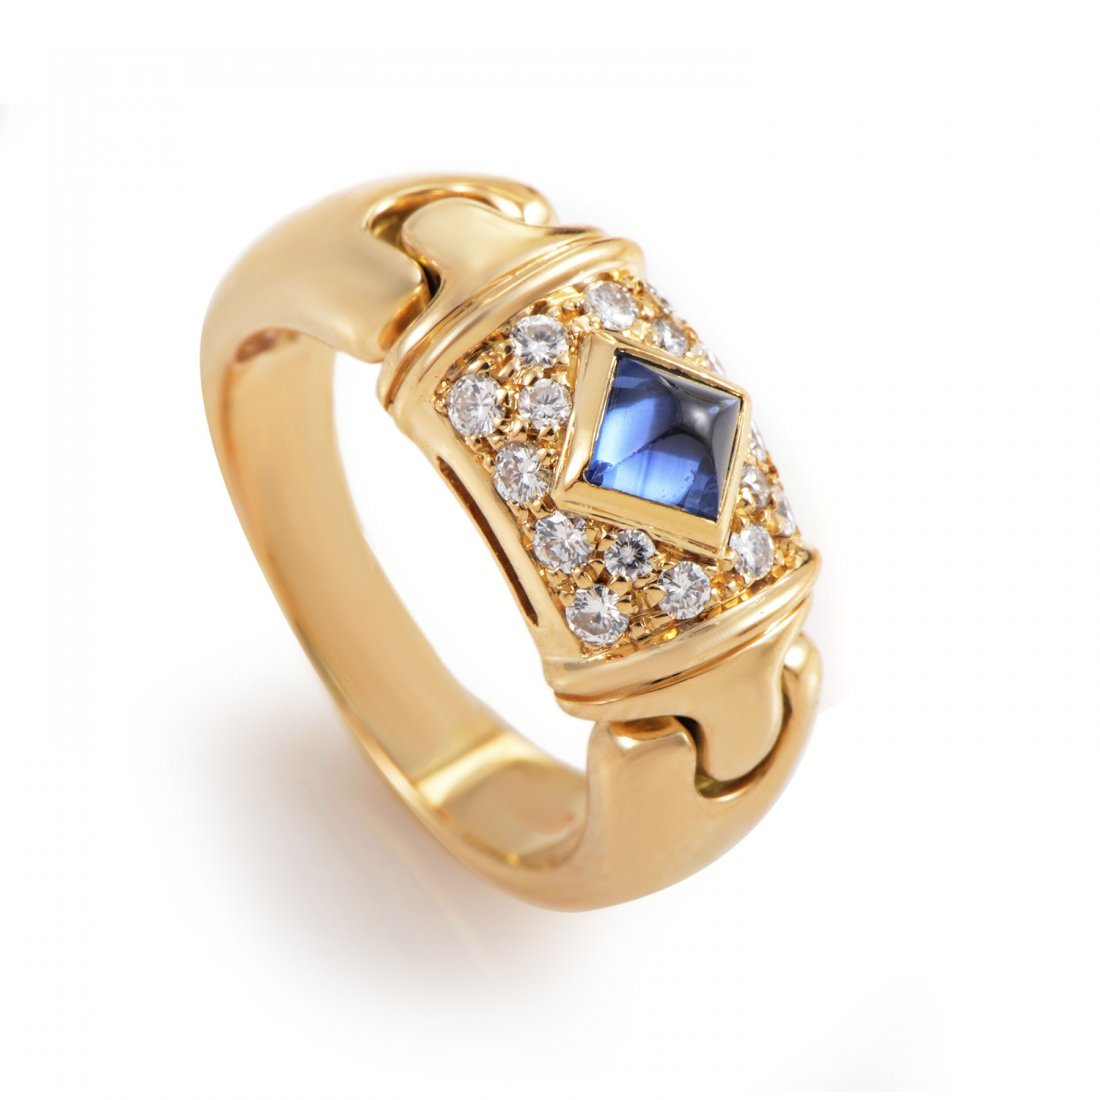 Bvlgari 18K Yellow Gold Diamond Sapphire Ring